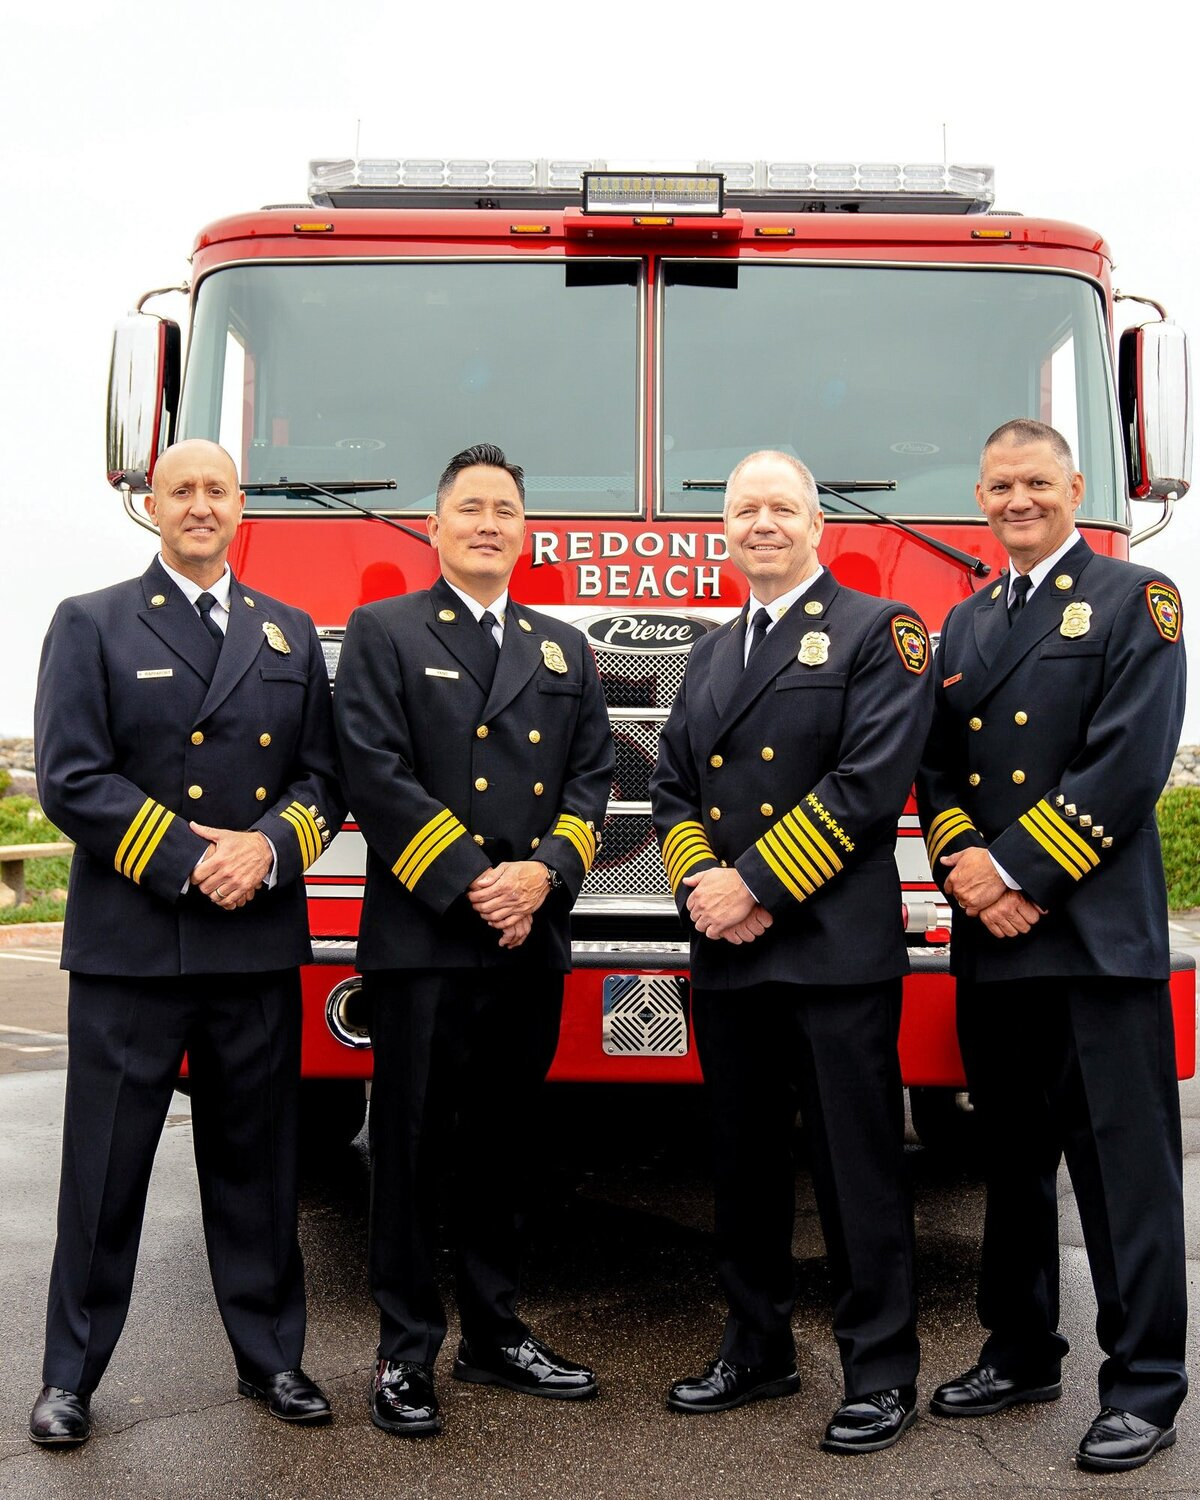 Redondo Beach Fire department photos